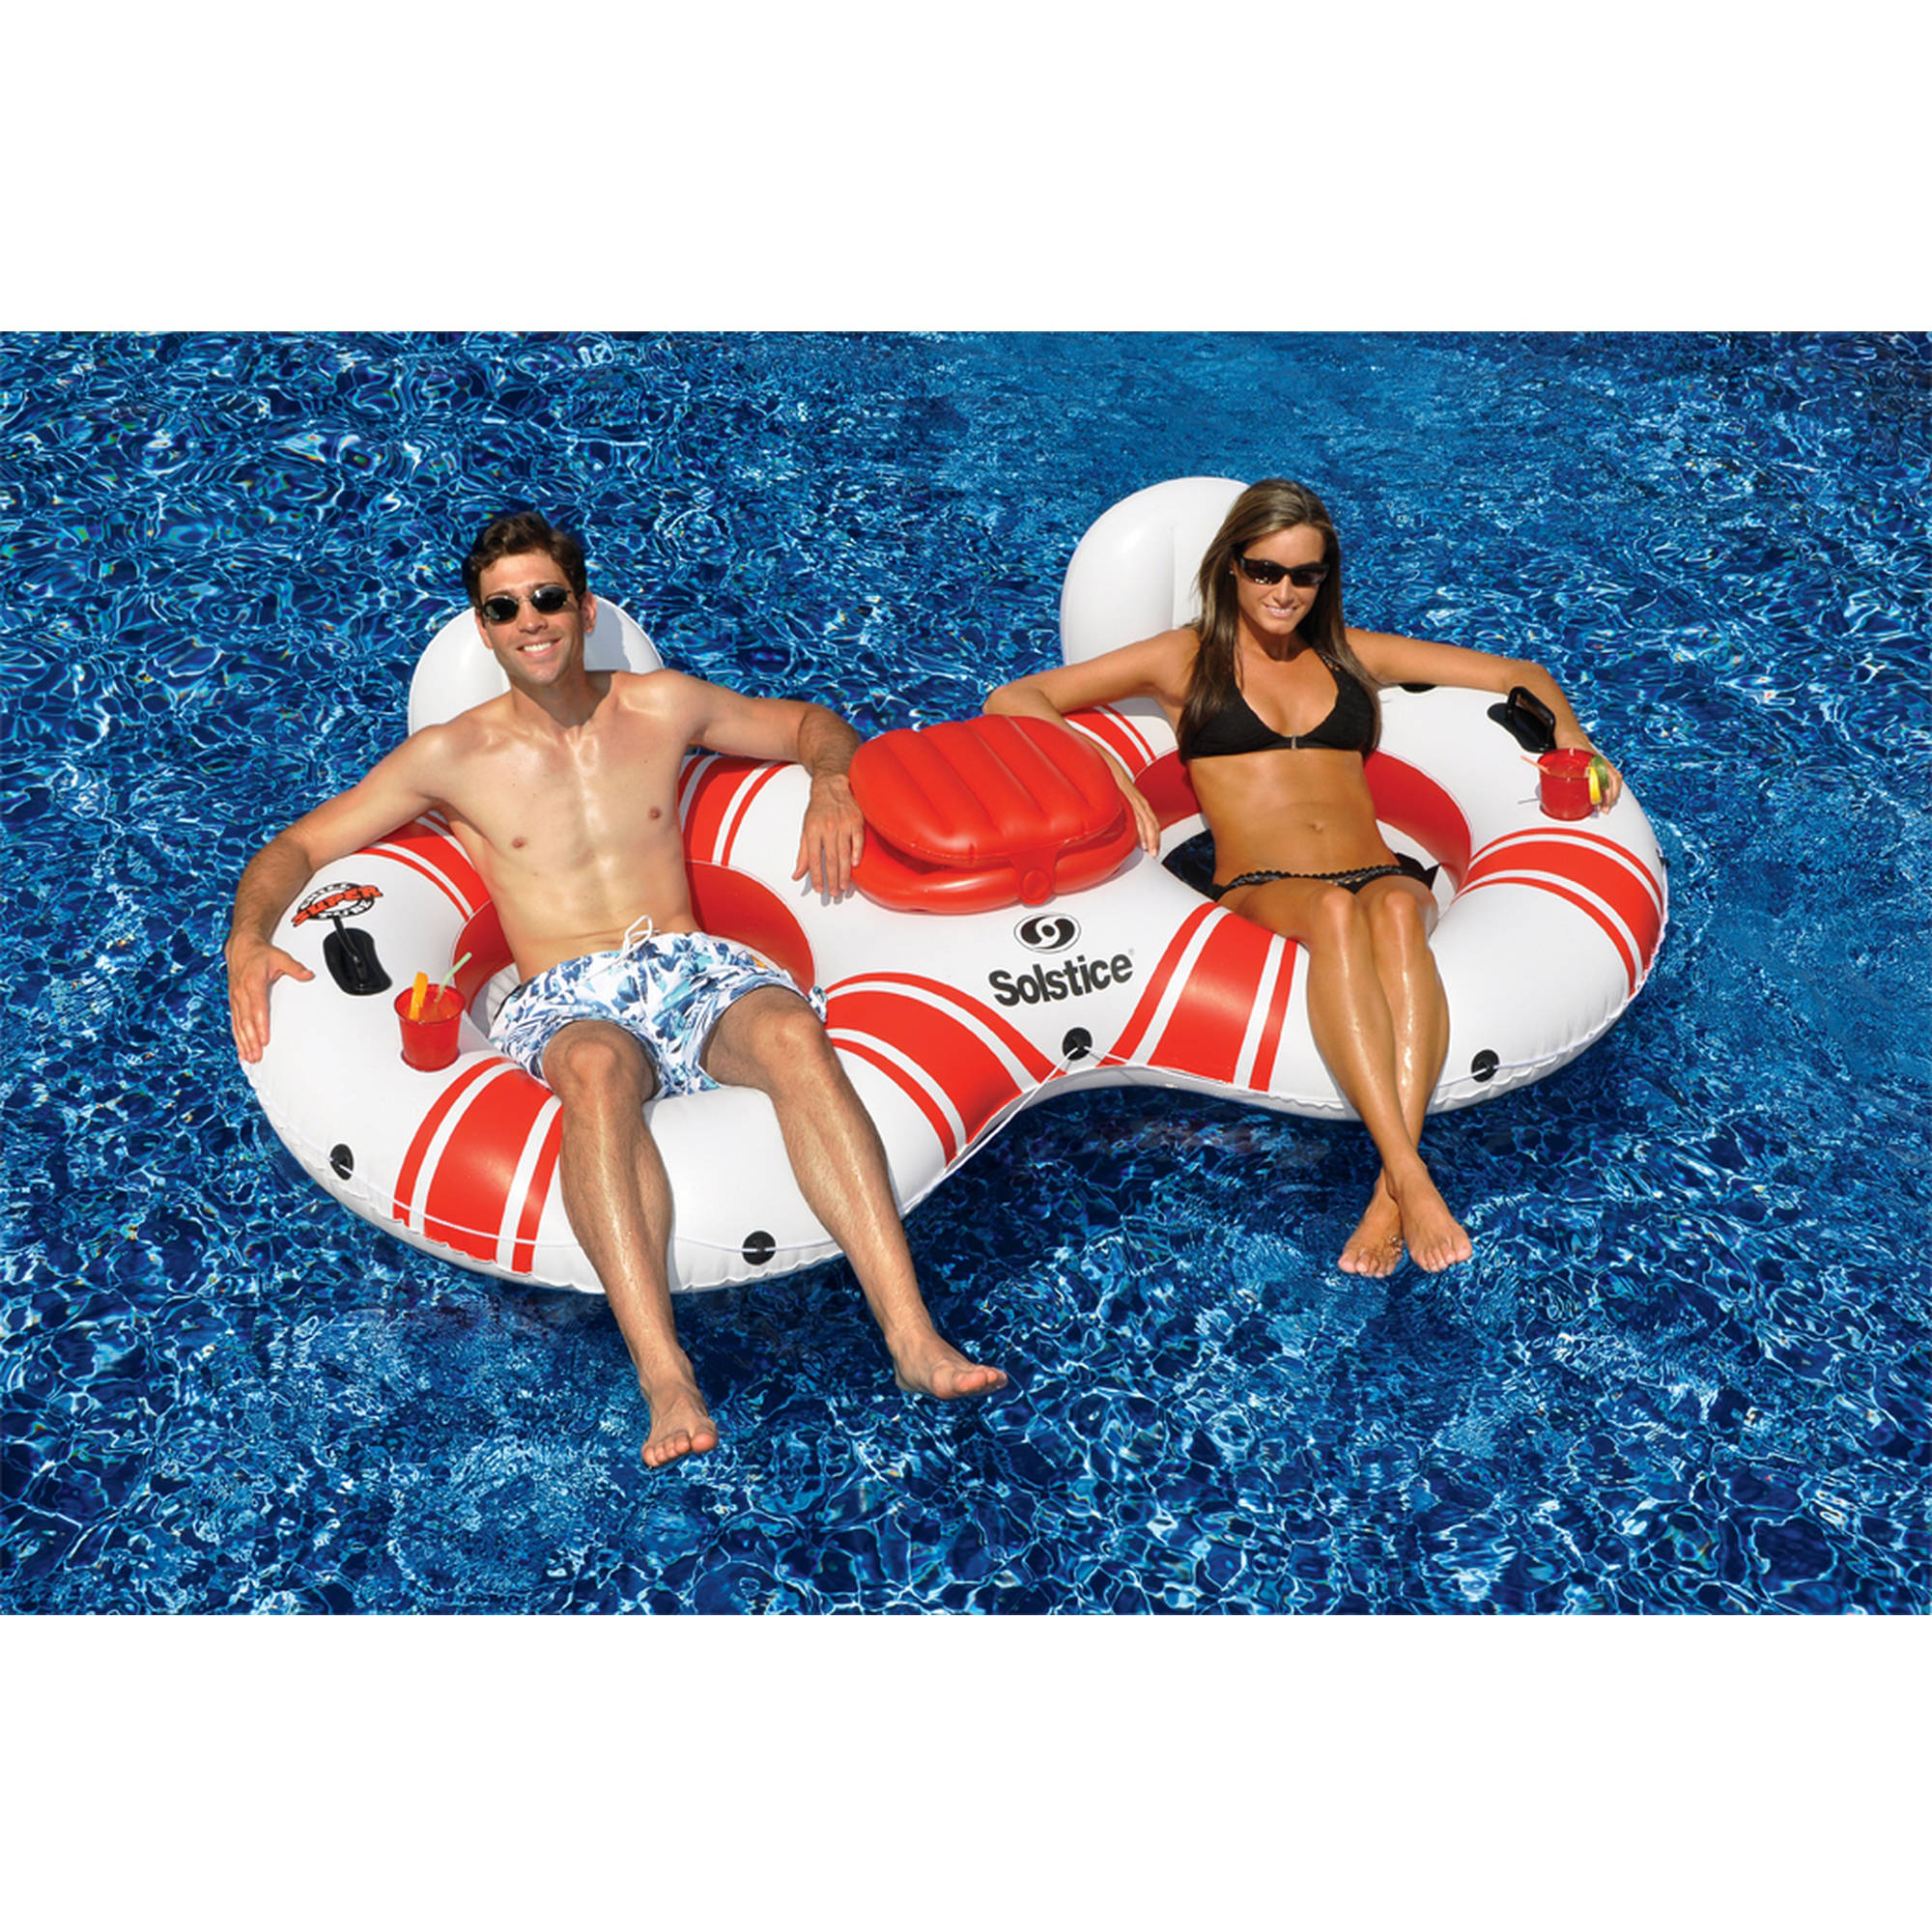 Solstice SuperChill Tube Duo Pool Float for Swimming Pools